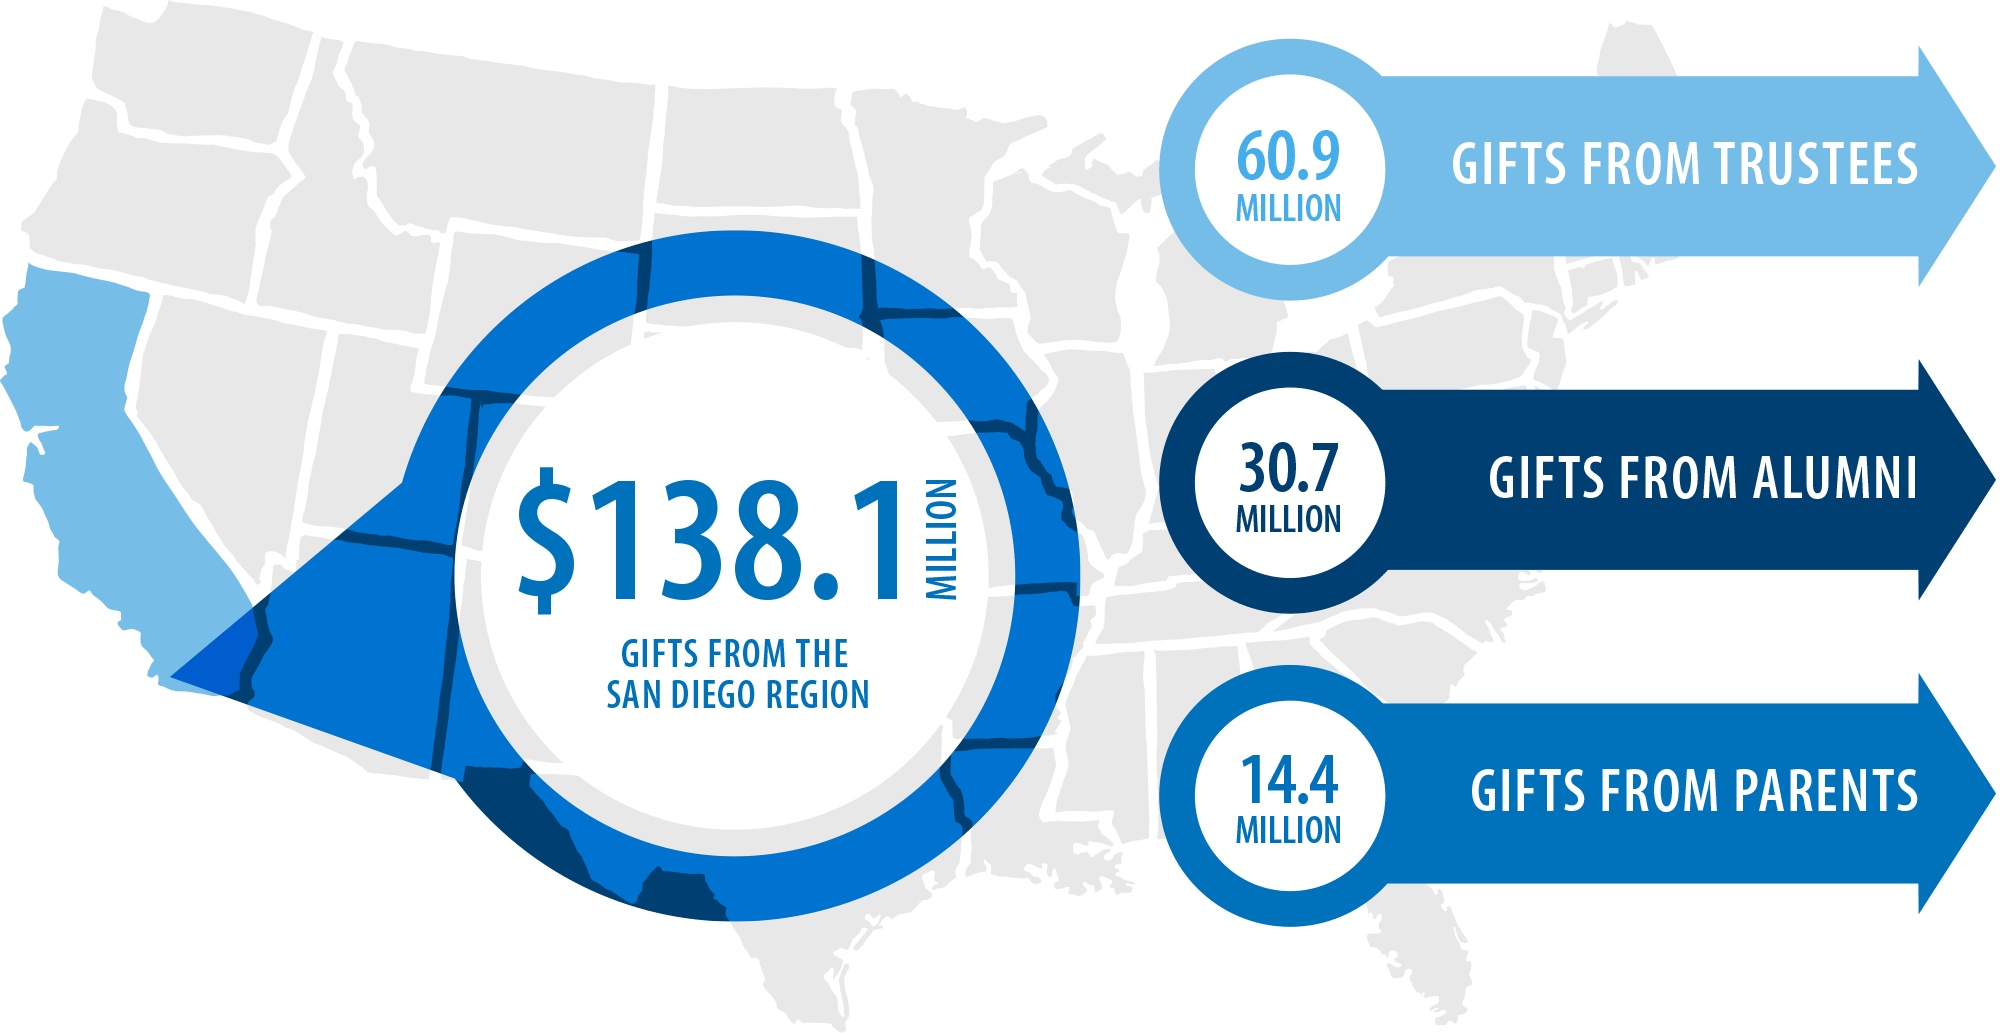 $138.1 million in gifts from the San Diego region; $60.9 million in gifts from trustees; $30.7 million in gifts from alumni; $14.4 million in gifts from parents